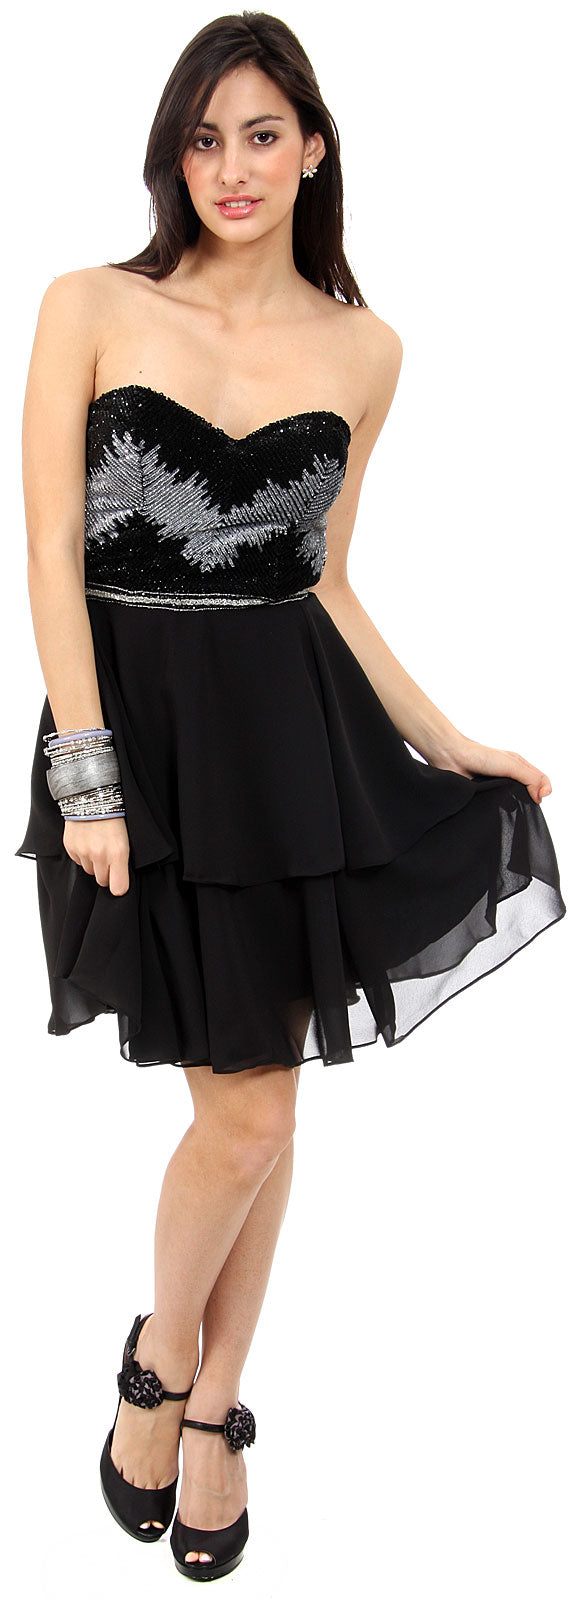 Image of Strapless Ruffled Skirt Sequined Bust Short Prom Dress  in alternative image